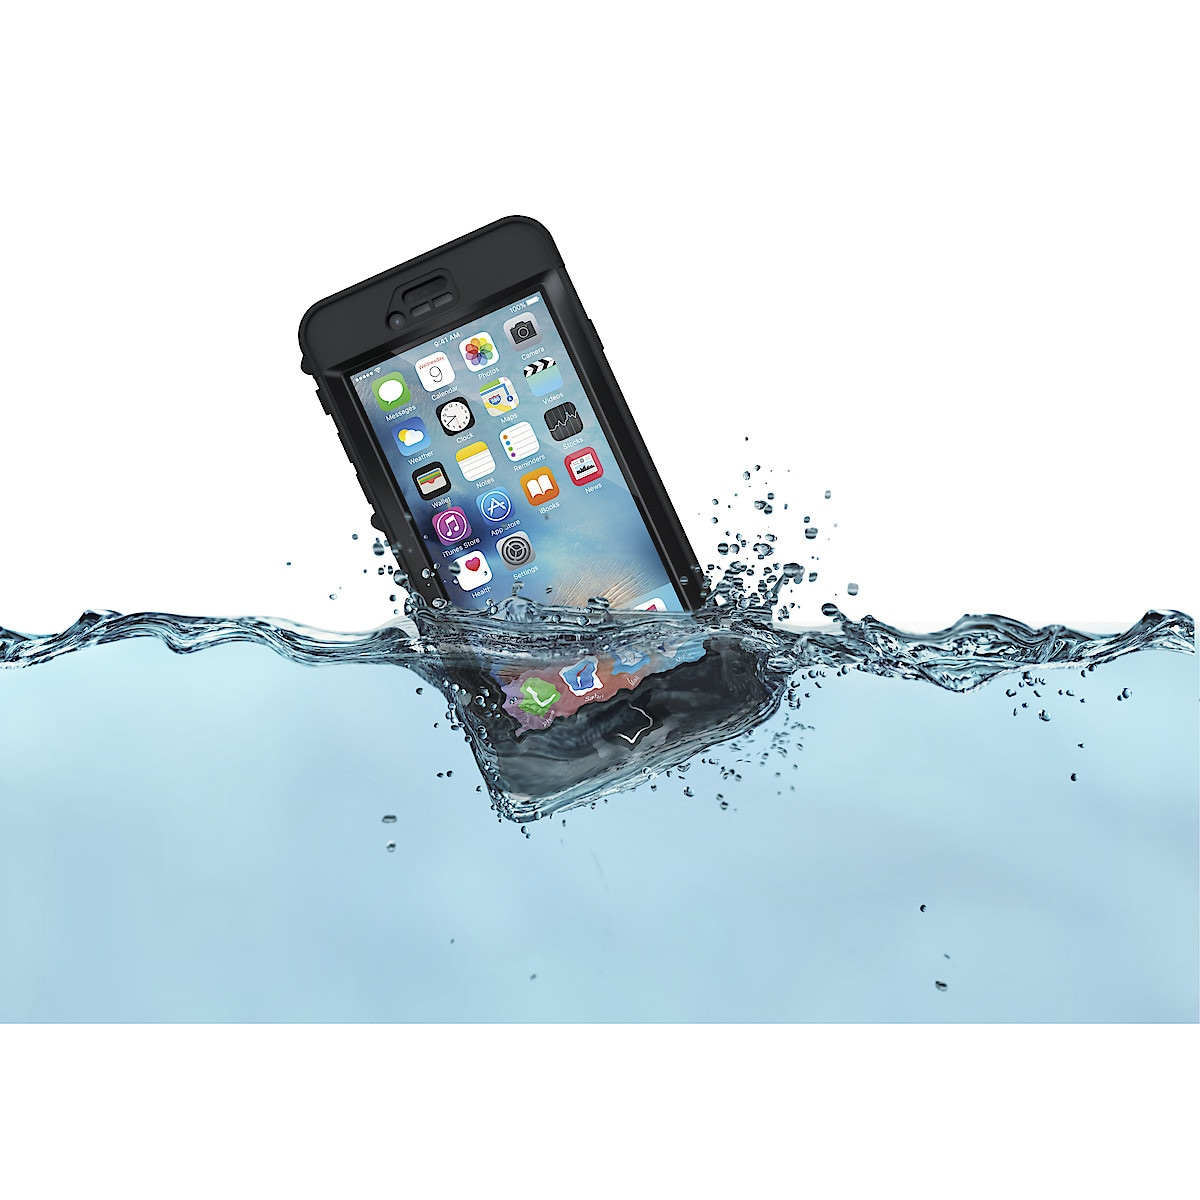 Lifeproof Nuud Mobile Phone Case for iPhone 6S